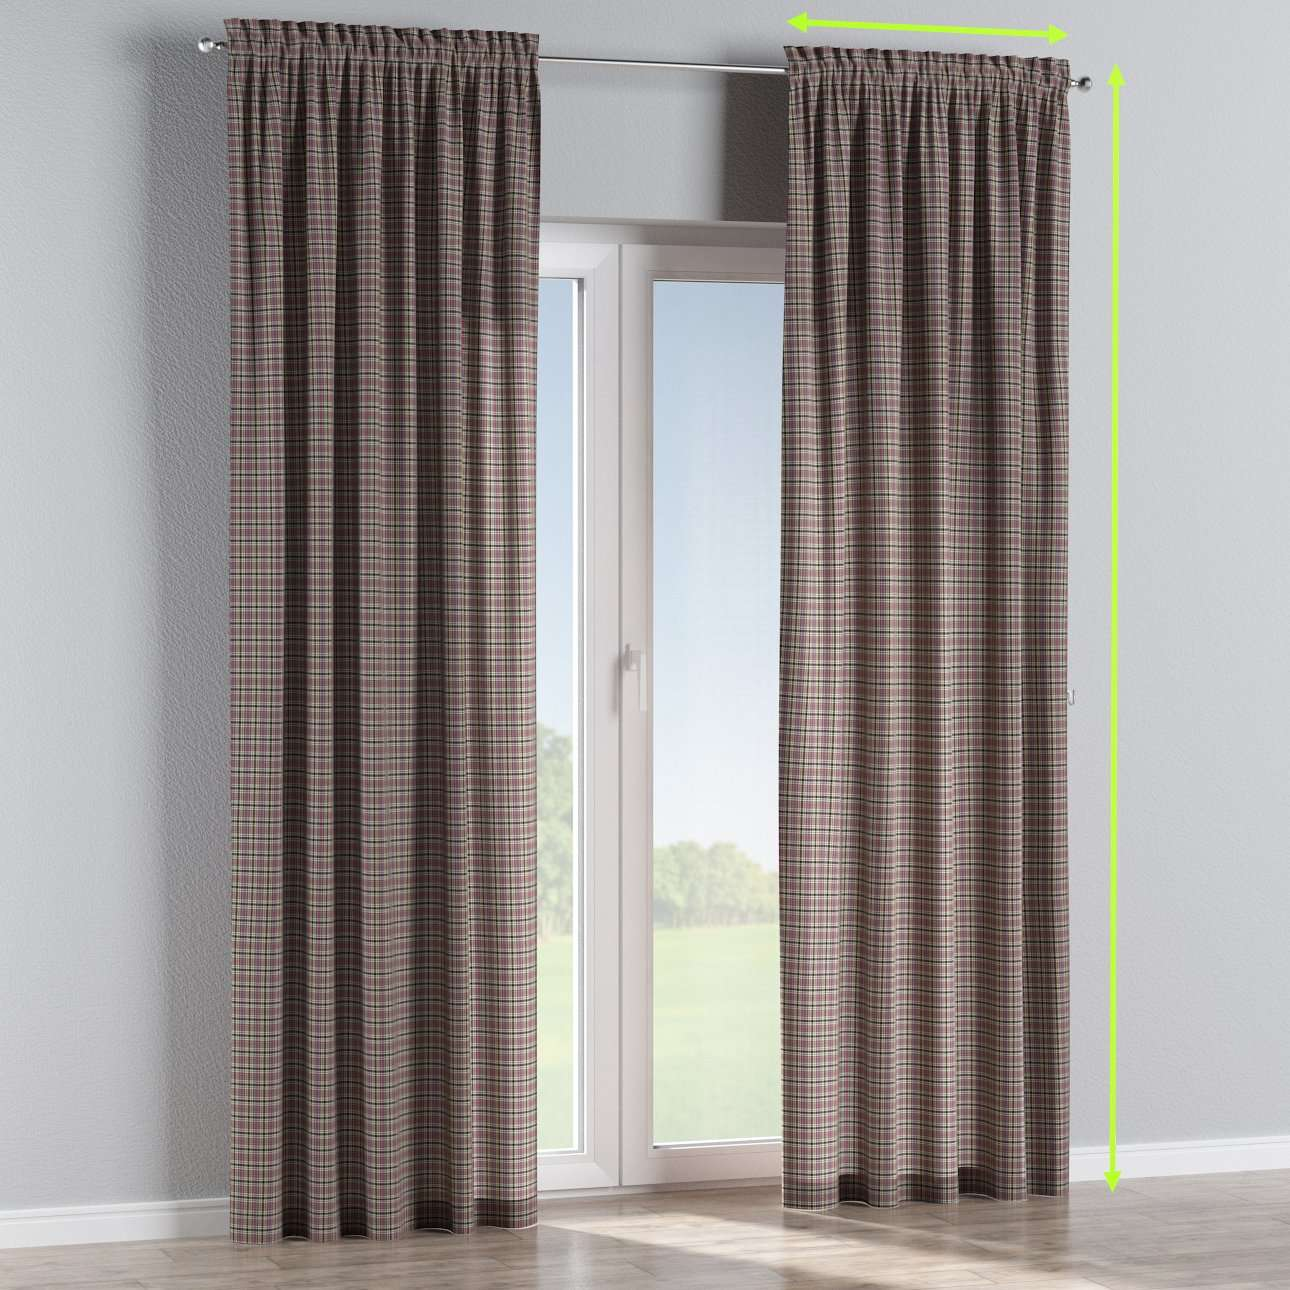 Slot and frill curtains in collection Bristol, fabric: 126-32